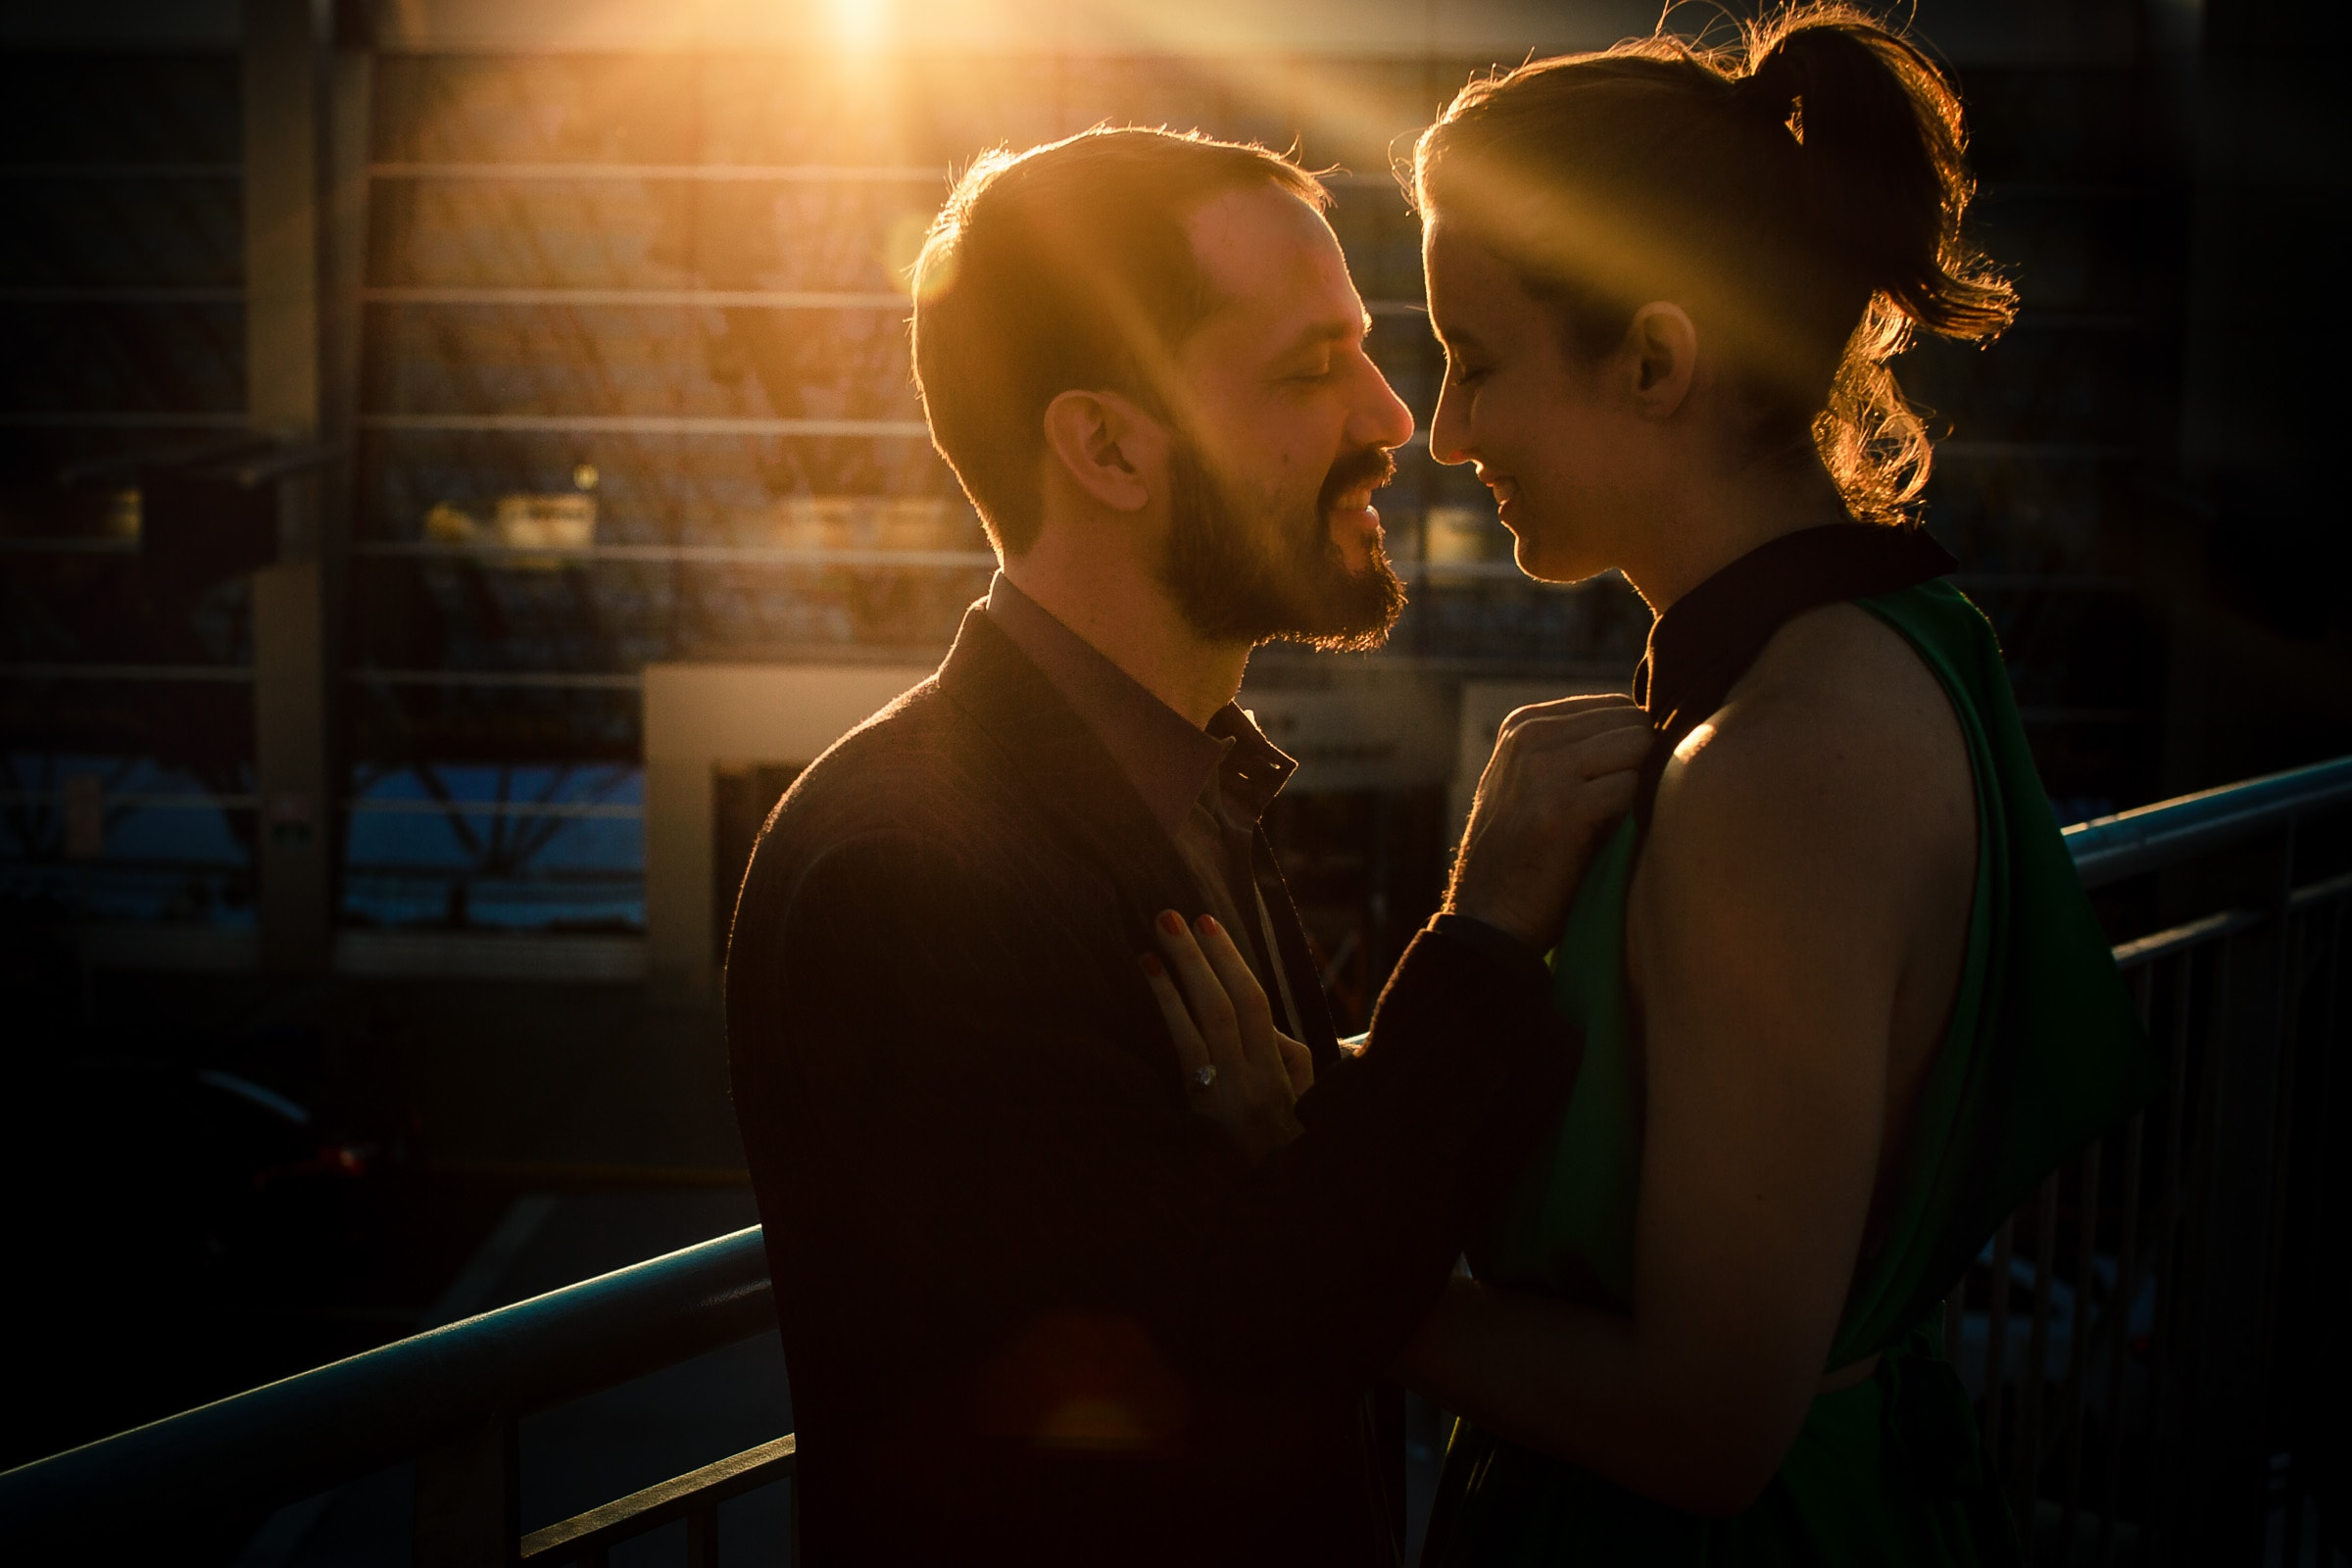 Creative Portland engagement photos of a couple in warm sunlight embracing